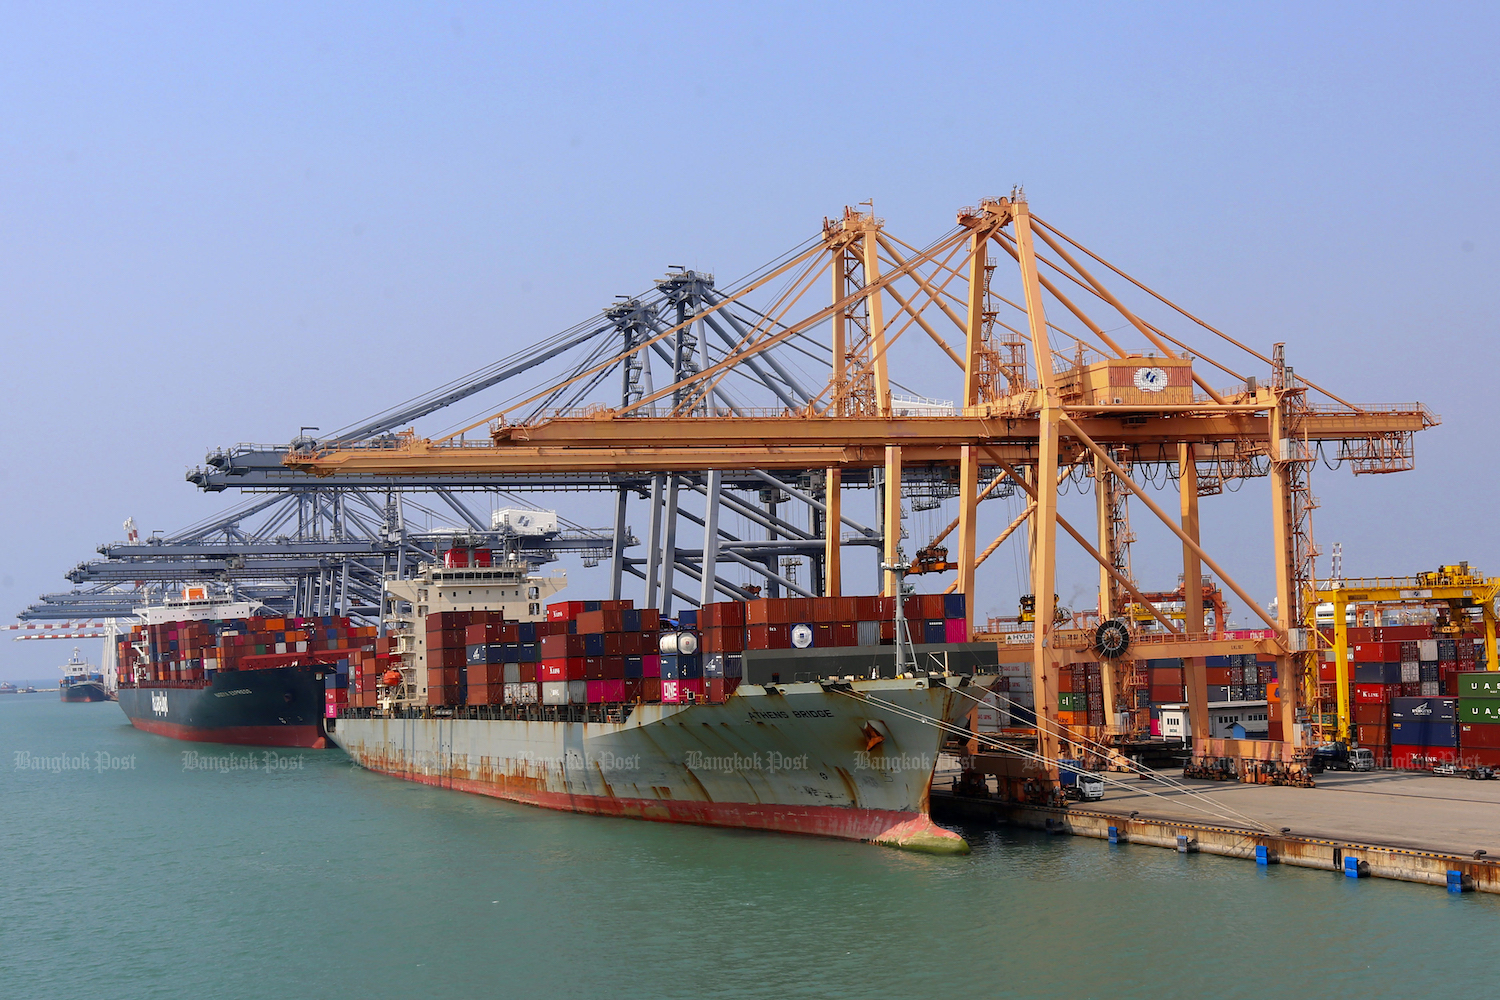 Containers are loaded onto a ship at Laem Chabang port in Chon Buri. (Post File Photo)